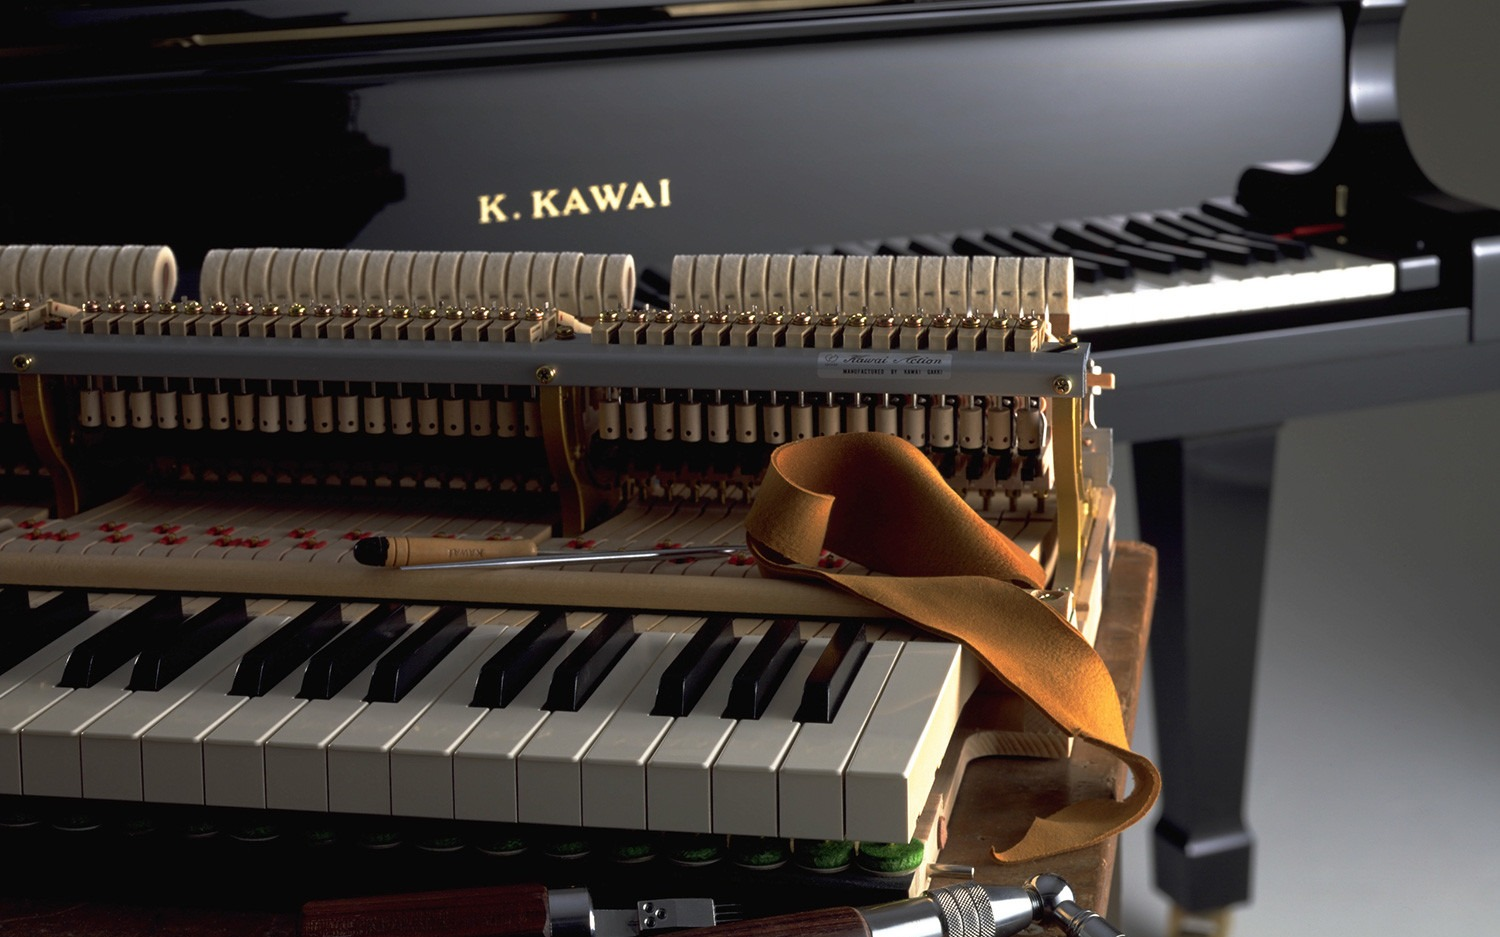 Kawai Pianos for Sale - New & Used | Coach House Pianos